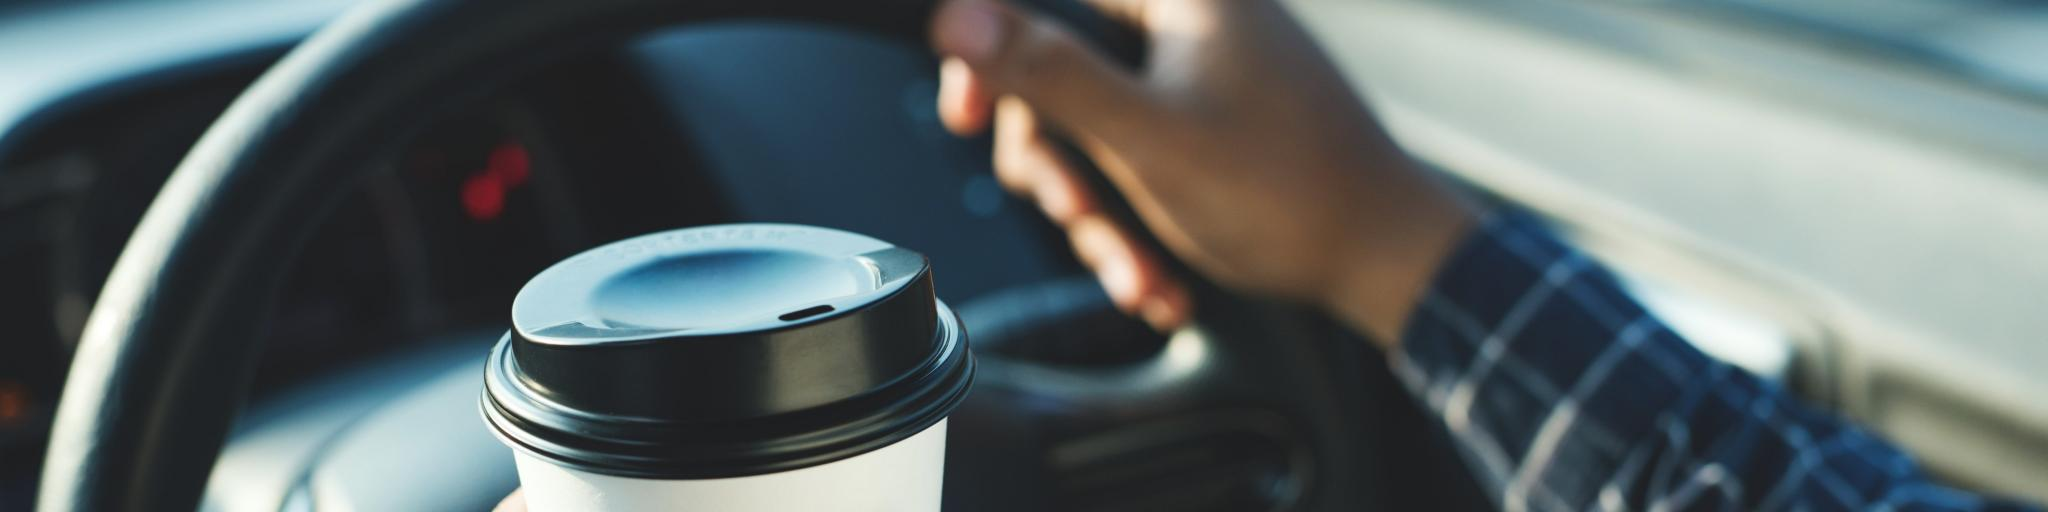 A person holding a coffee in front of a steering wheel